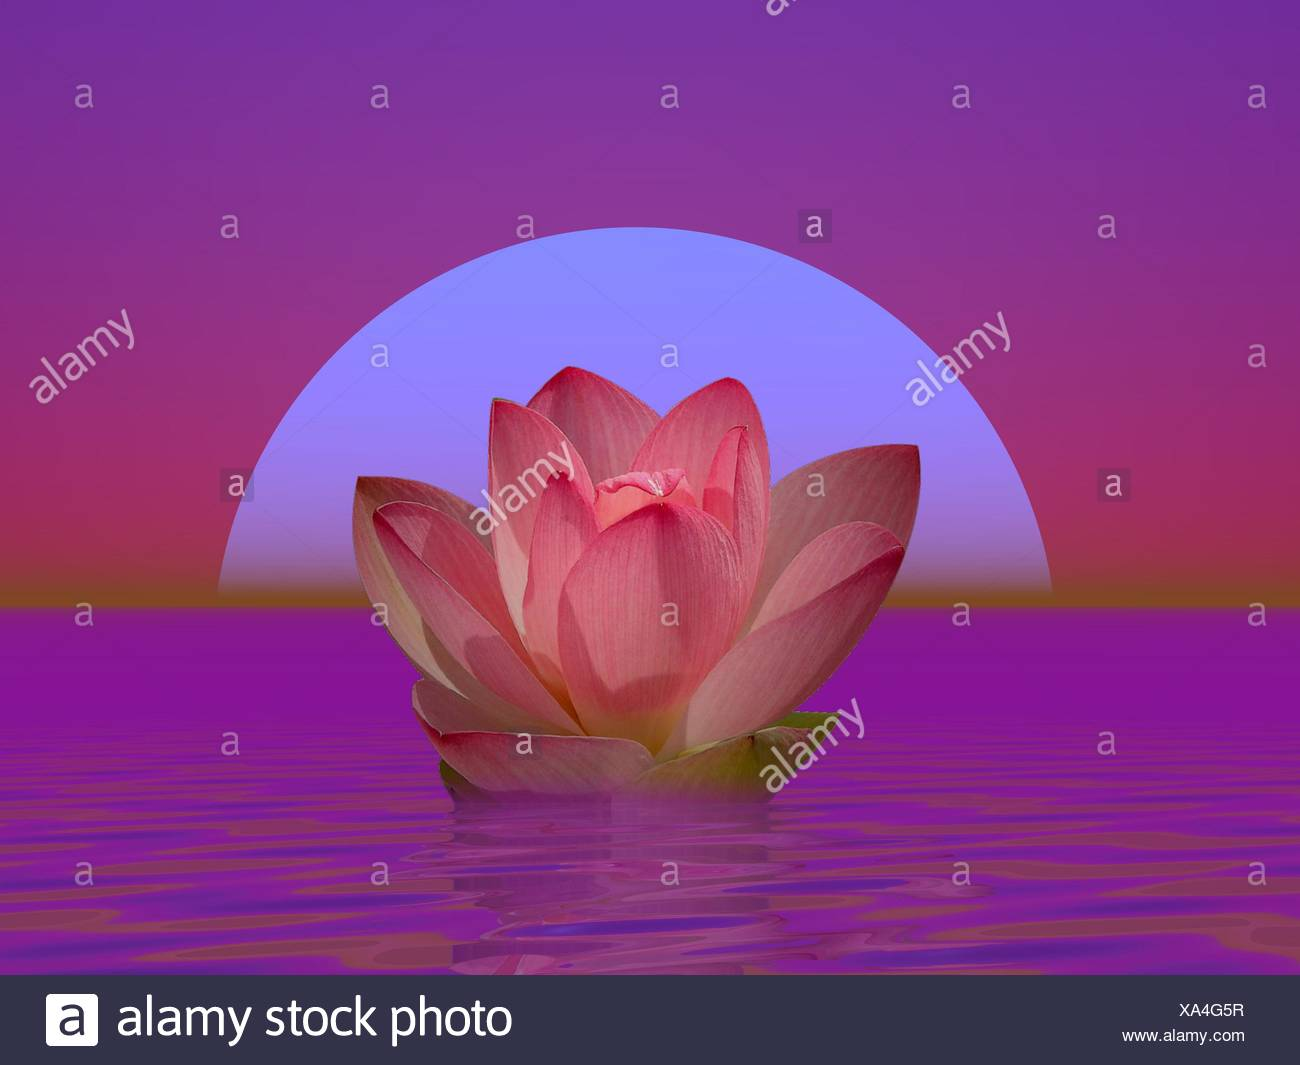 Lily Flower And Moonlight Stock Photo 281612963 Alamy